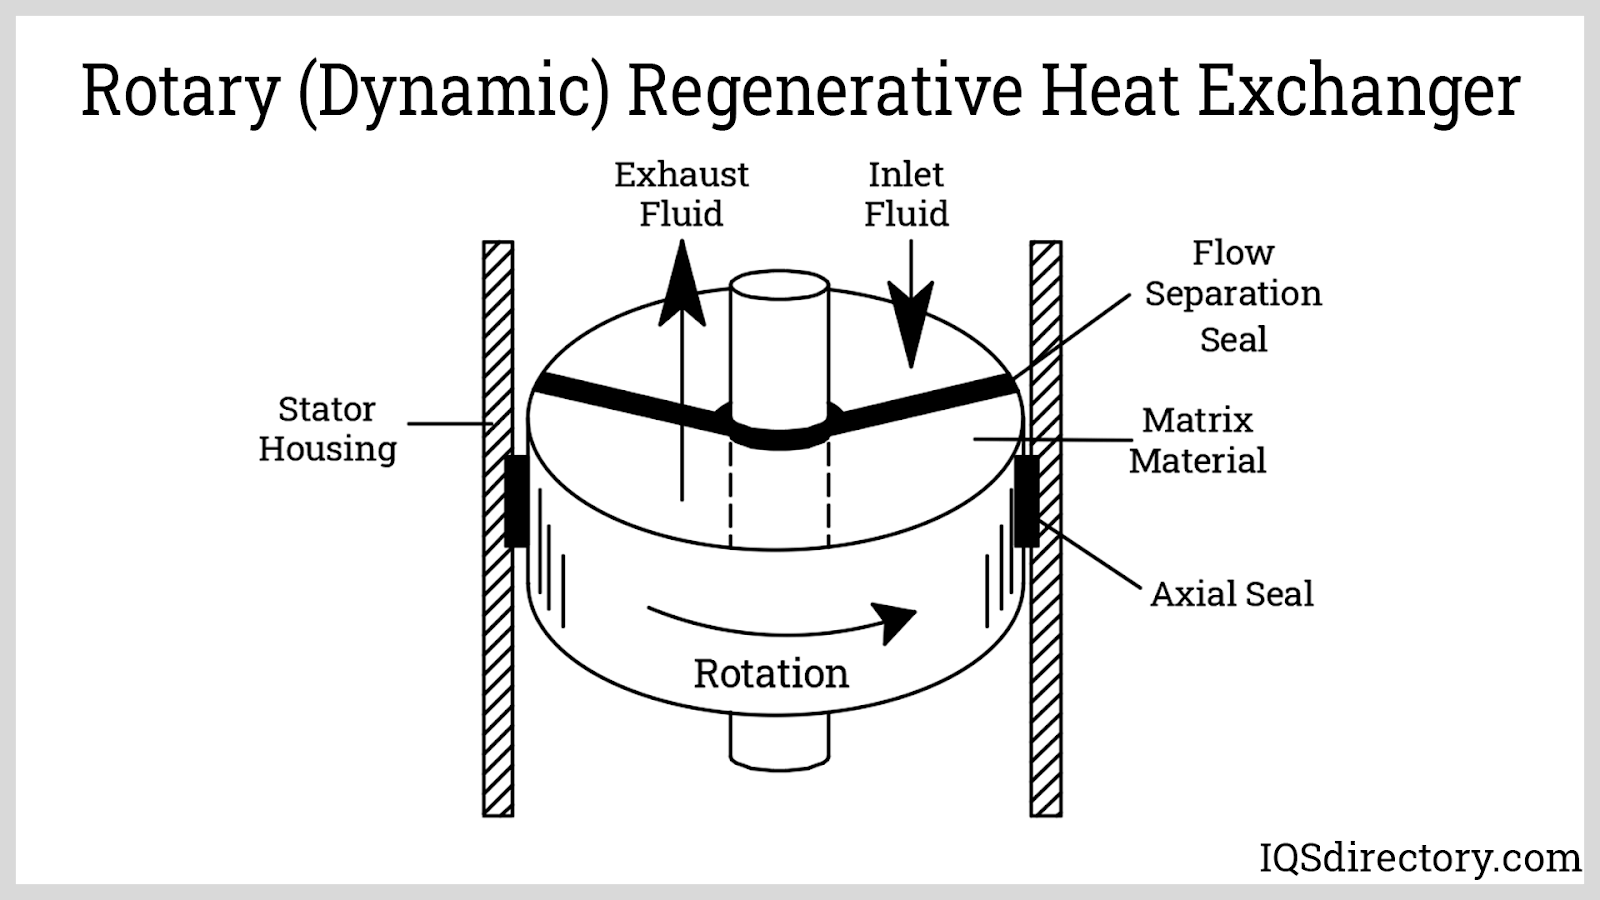 Rotary (Dynamic) Regenerative Heat Exchanger